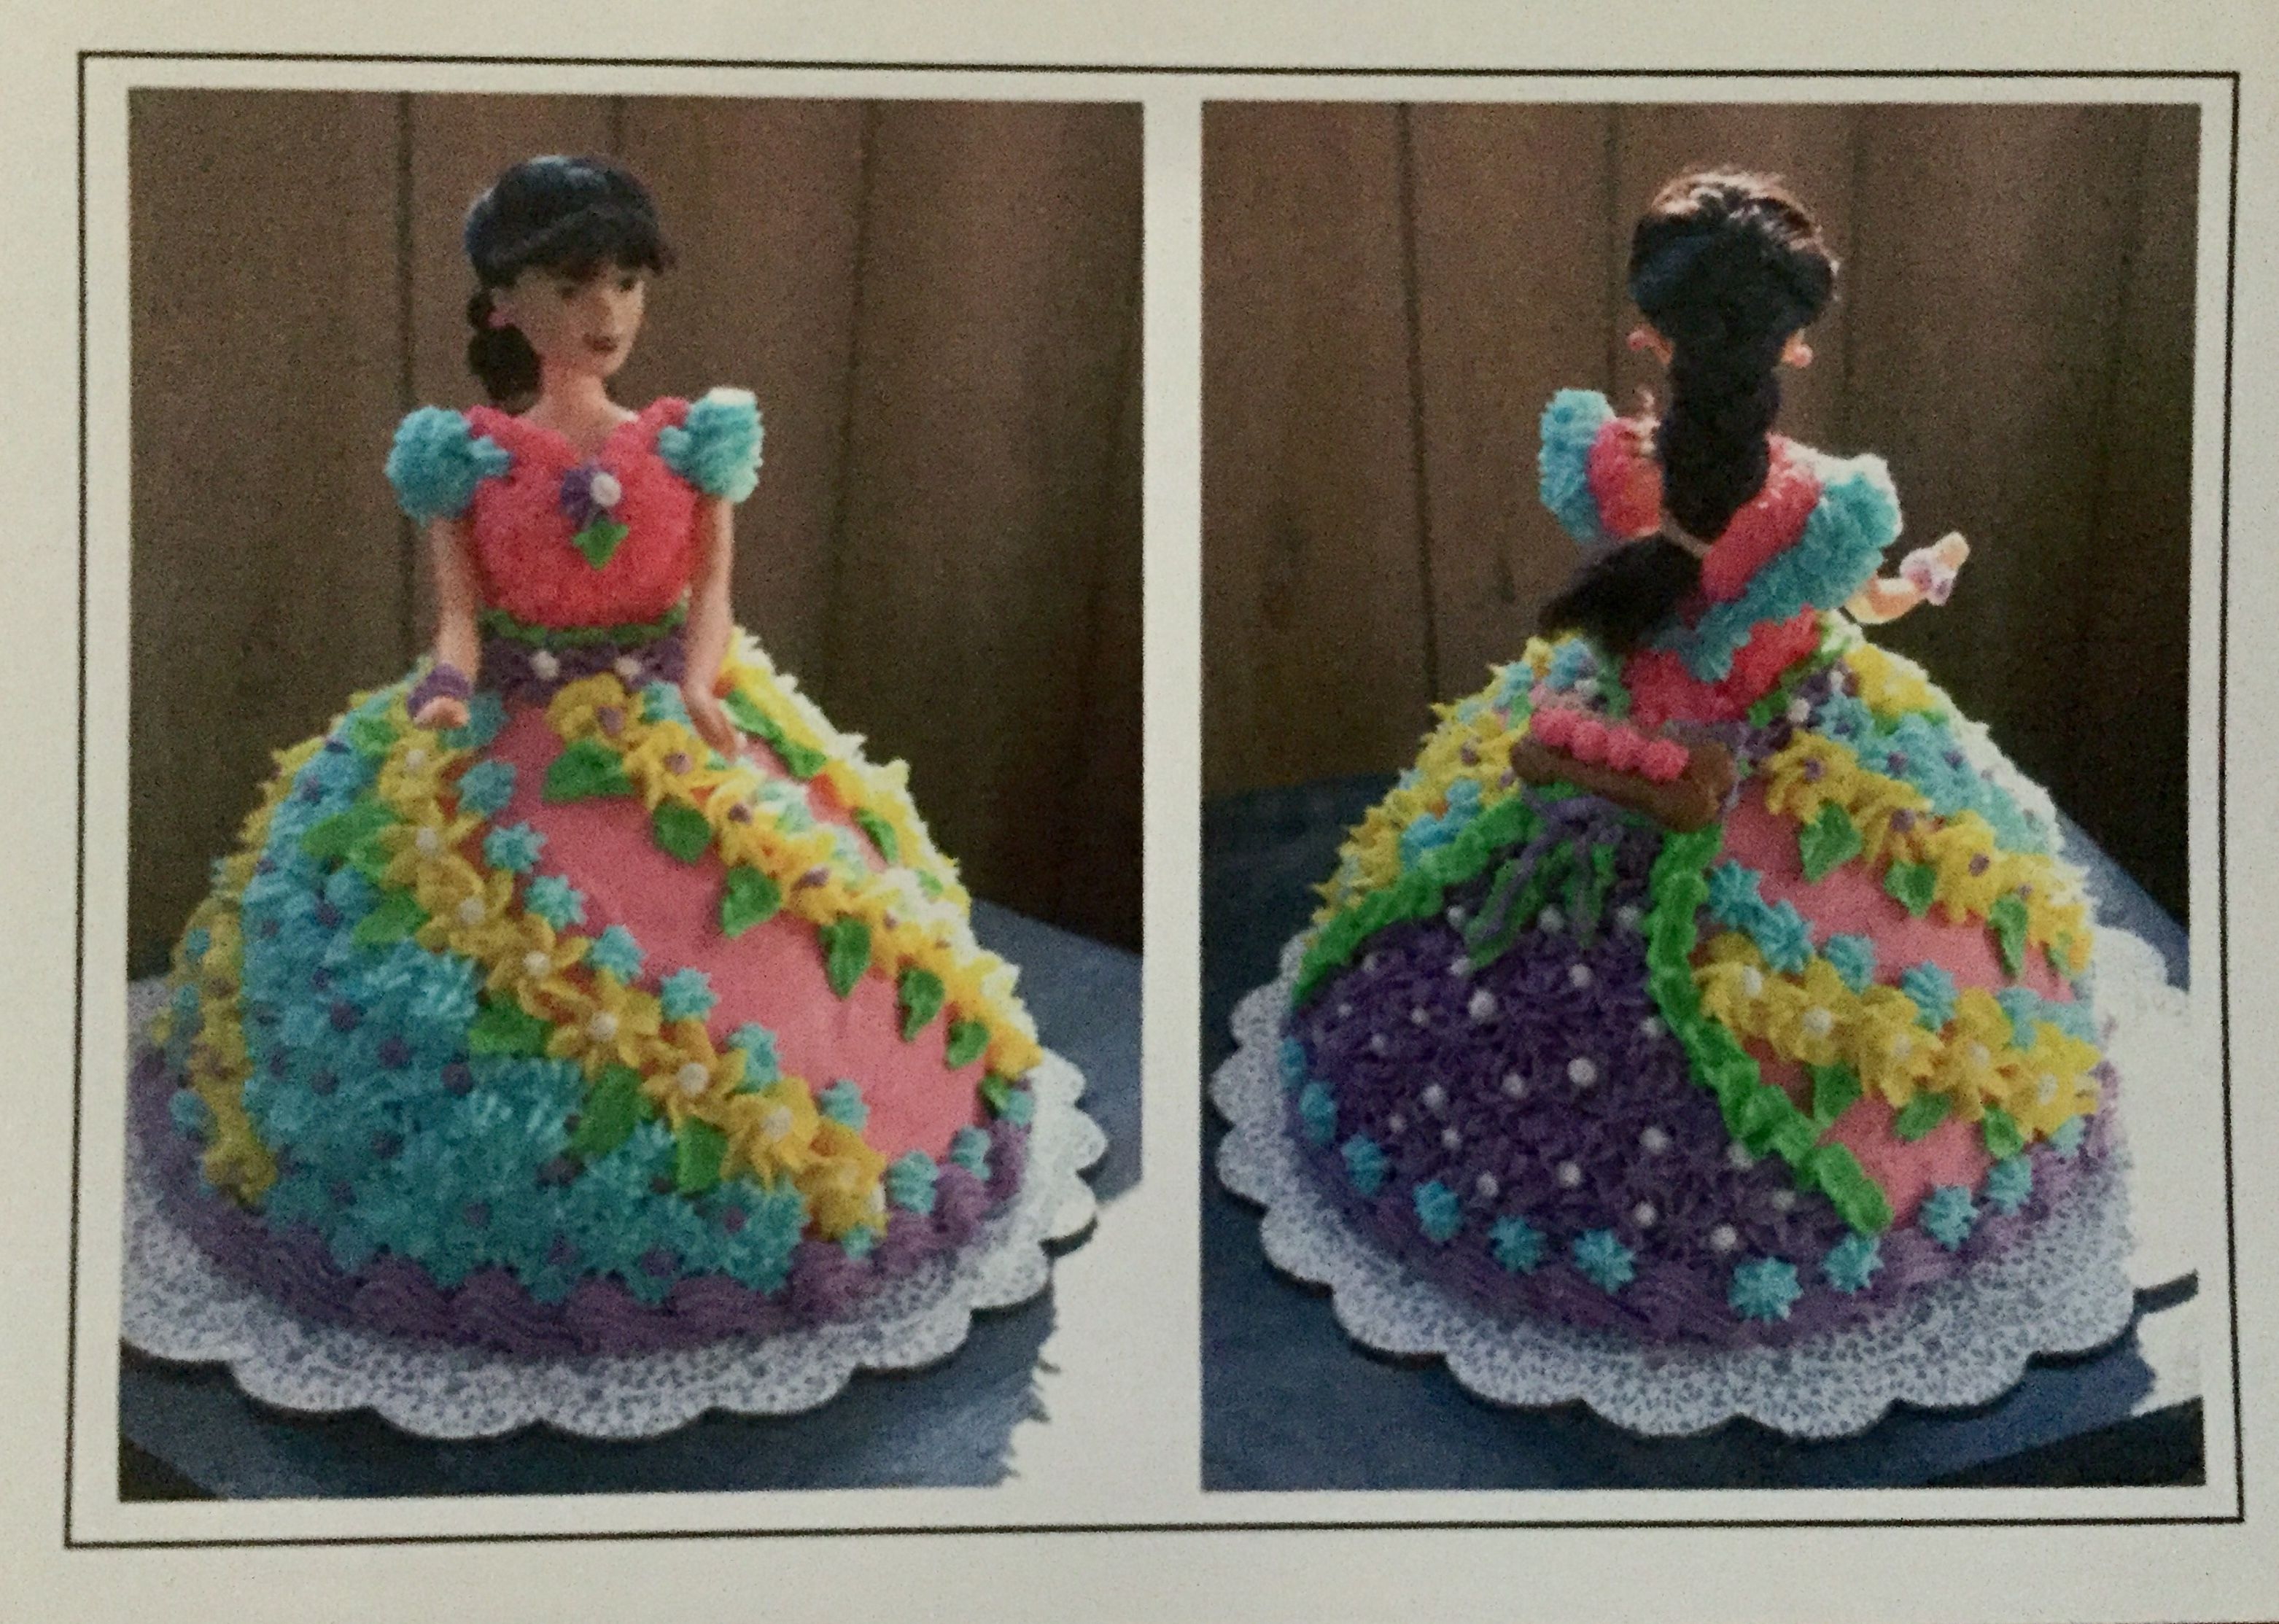 Doll cake front connies 10th birthday allentown